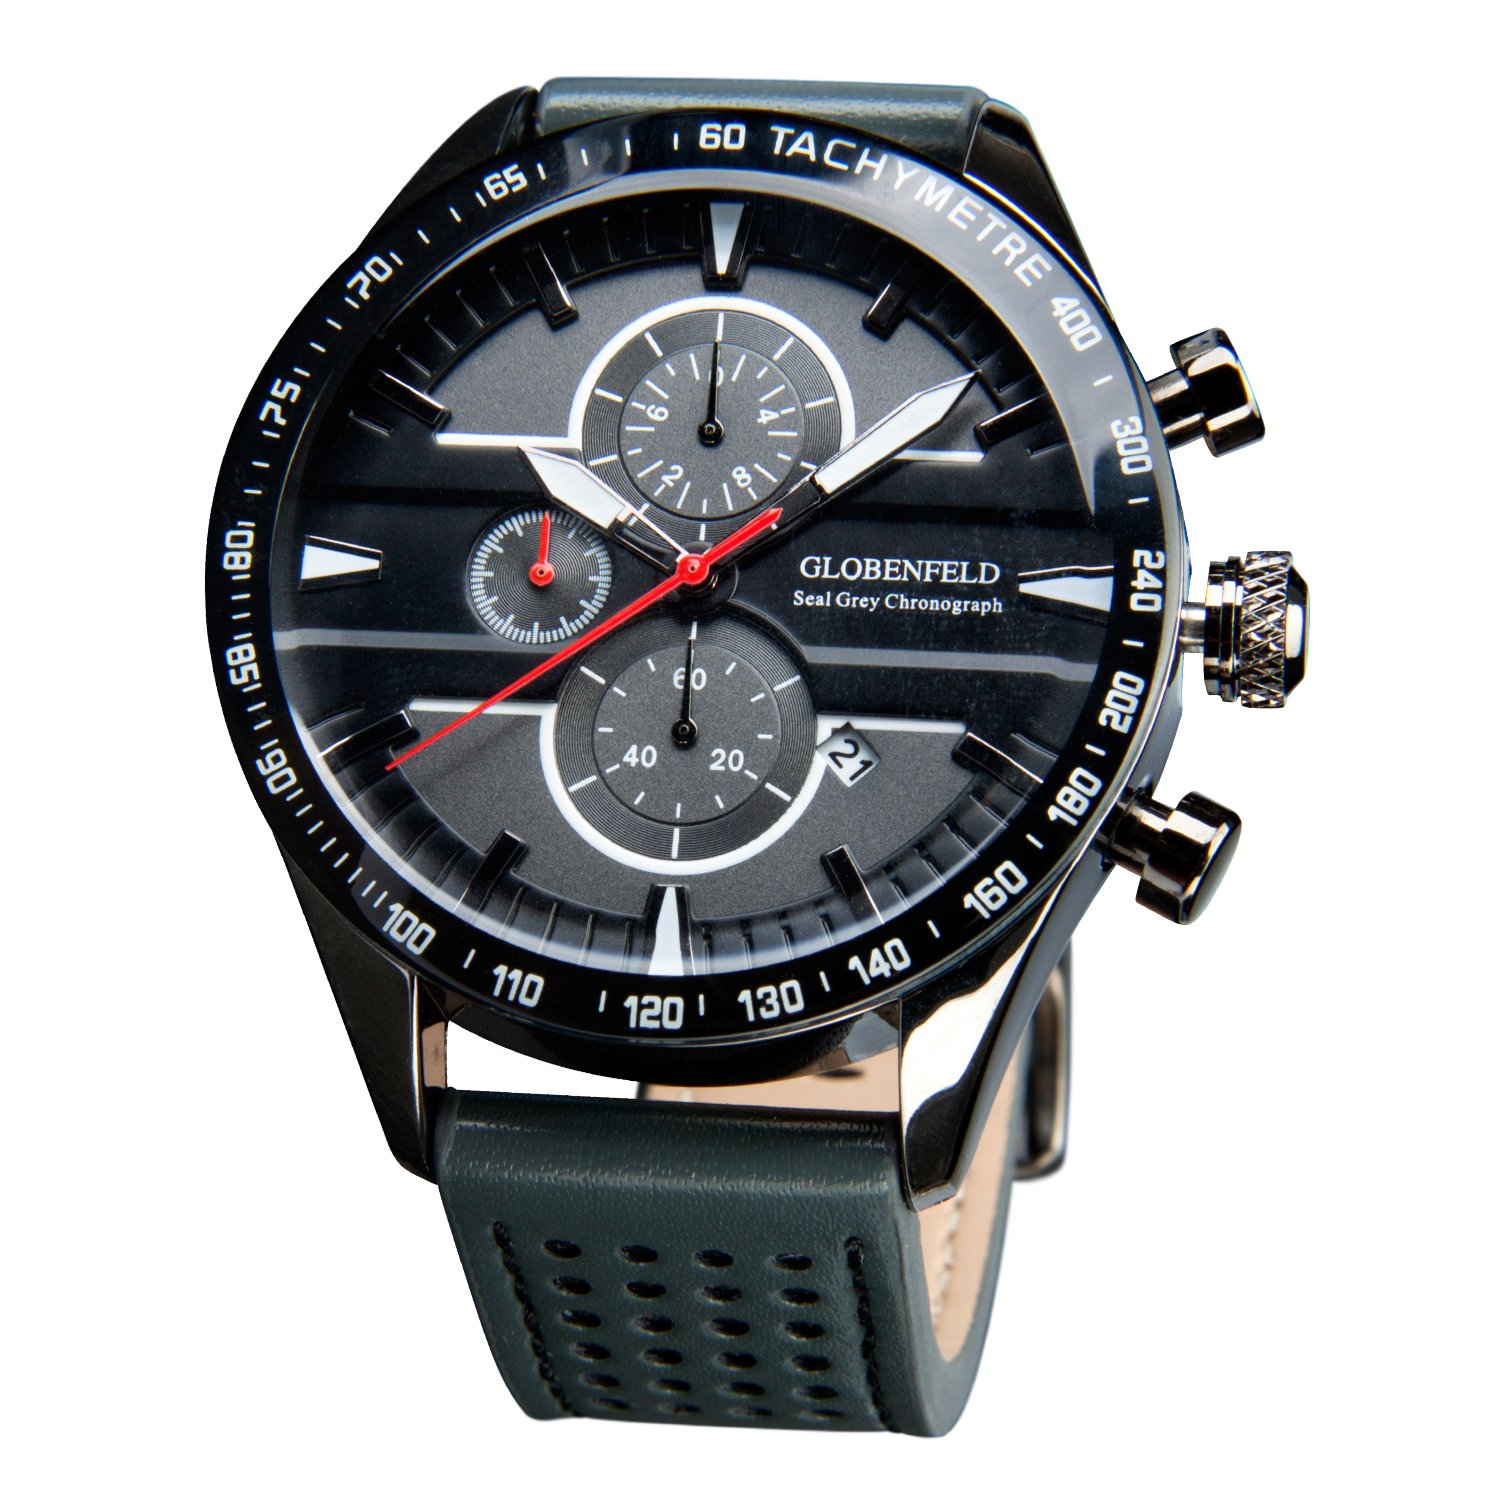 popular best affordable men watch armani for watches mens under exchange manly recommended review s